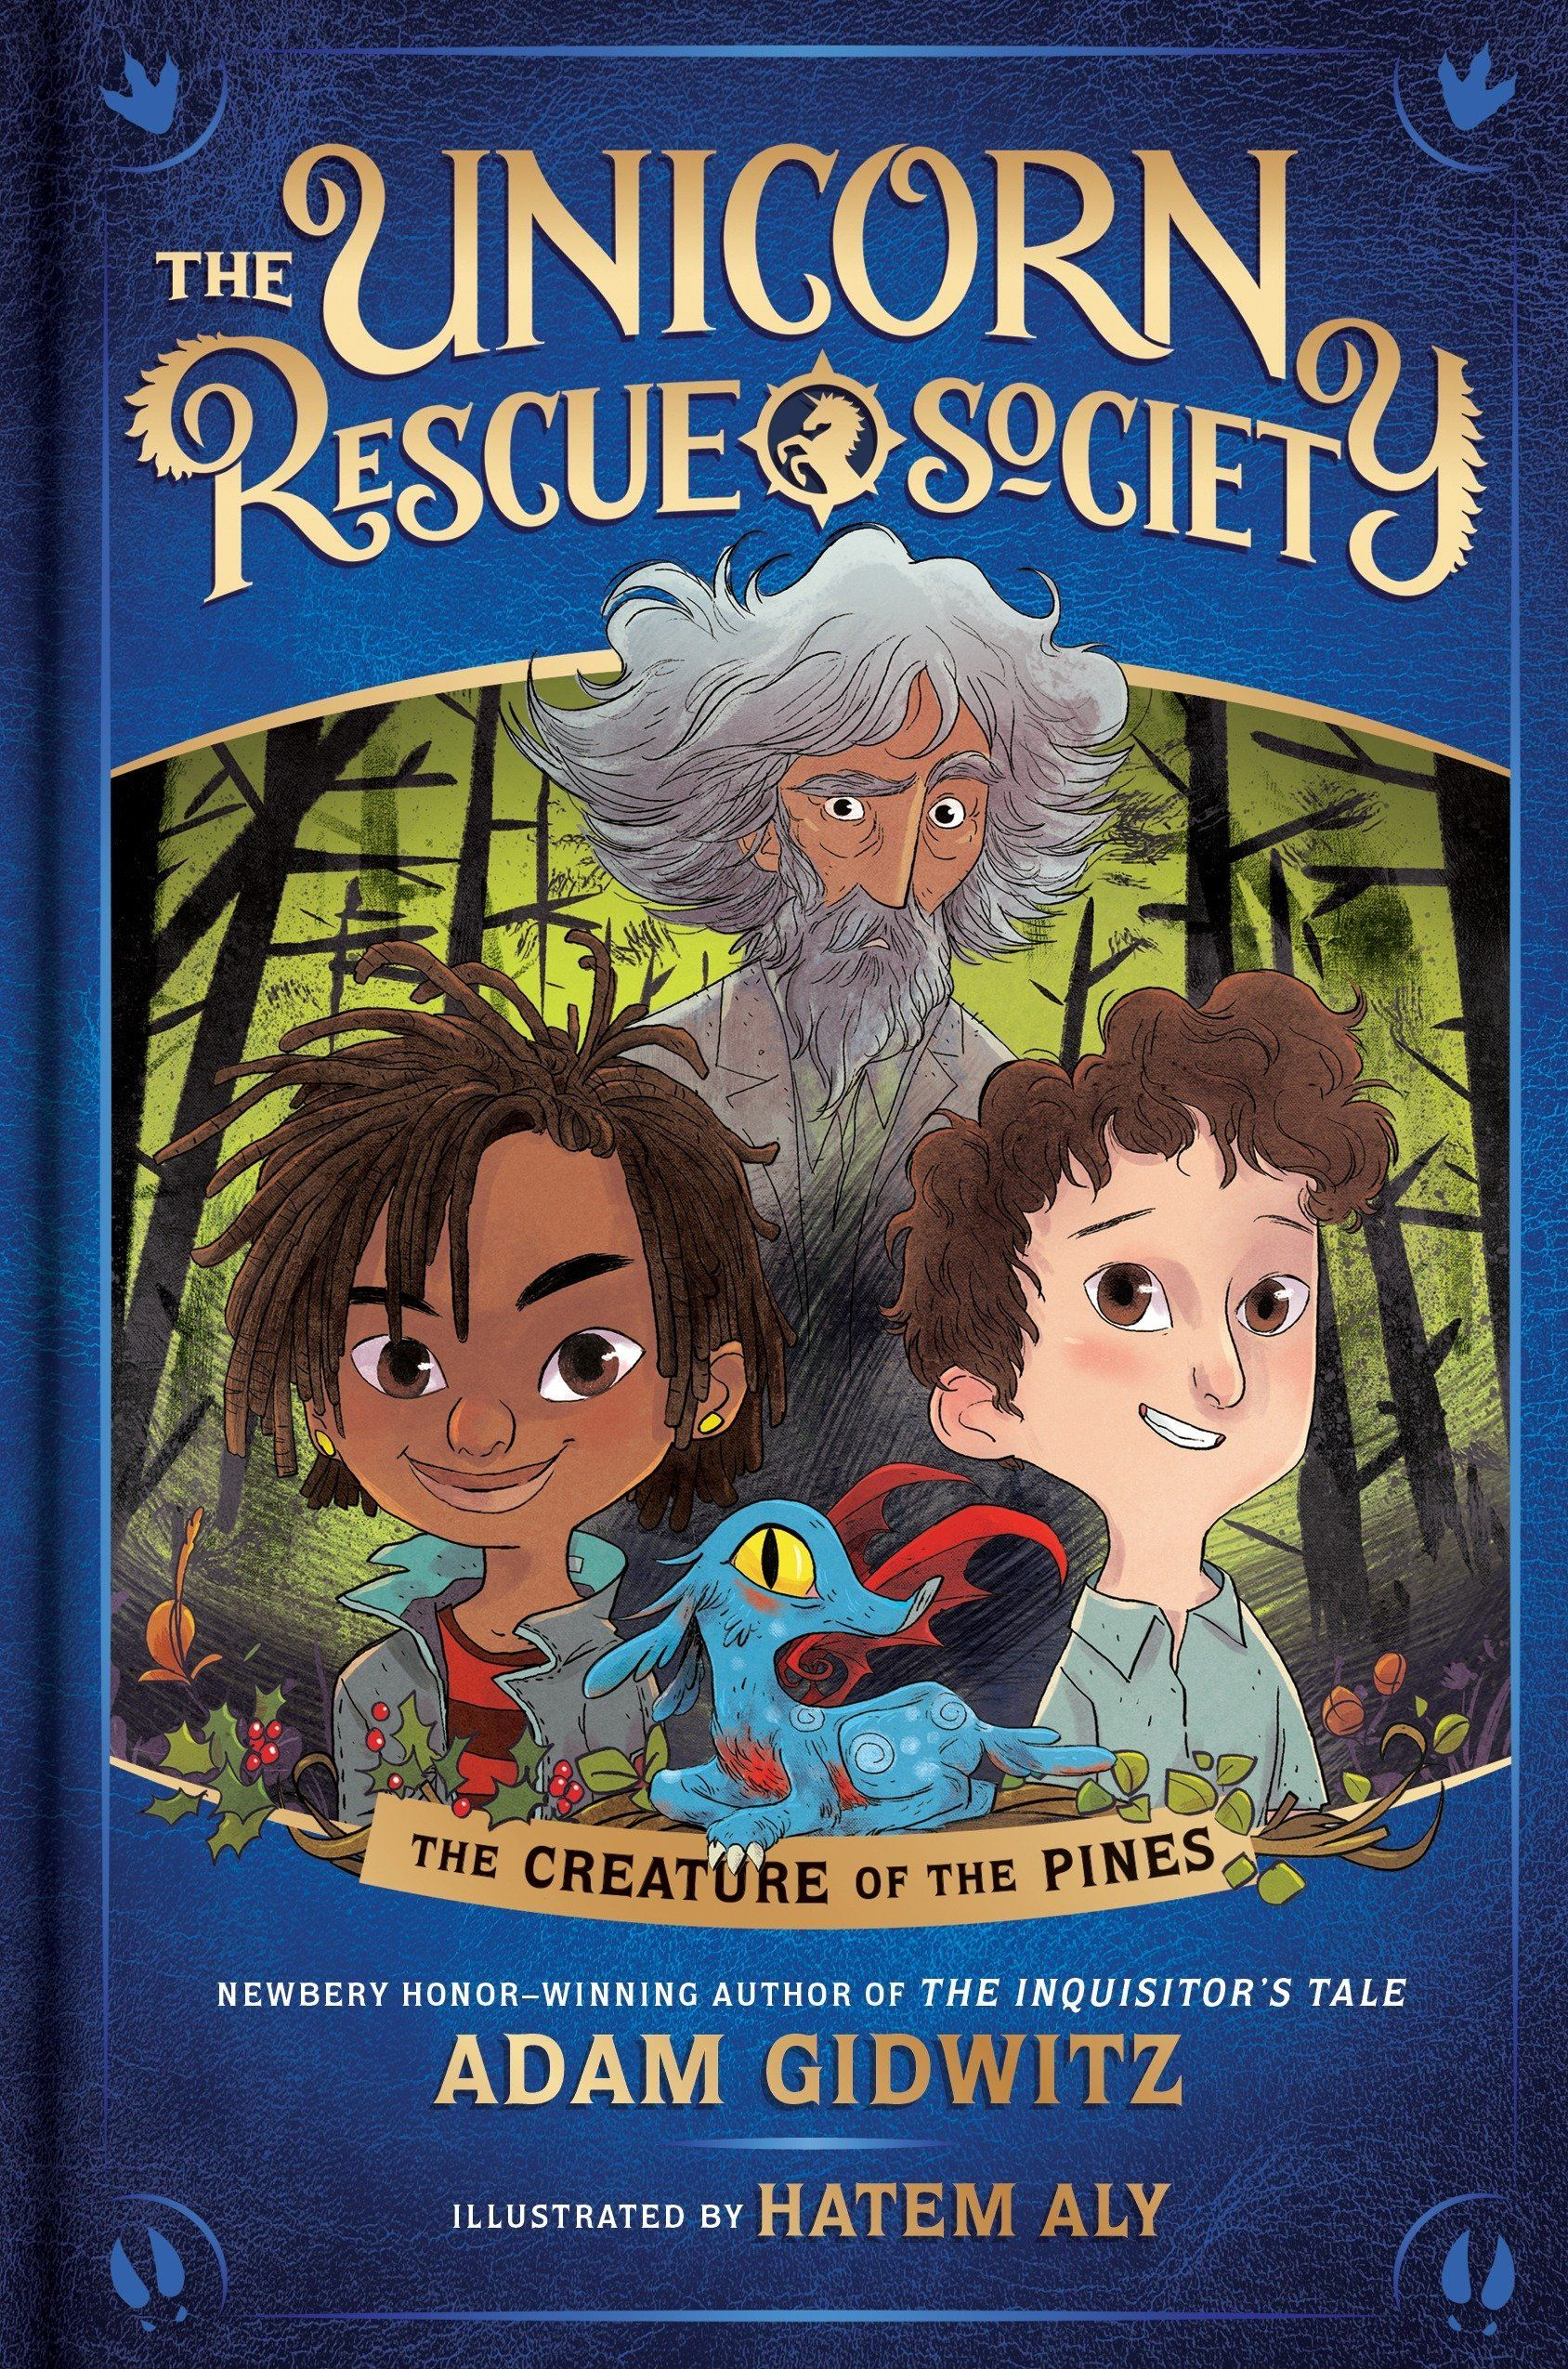 Image of a Unicorn Rescue Society book cover.